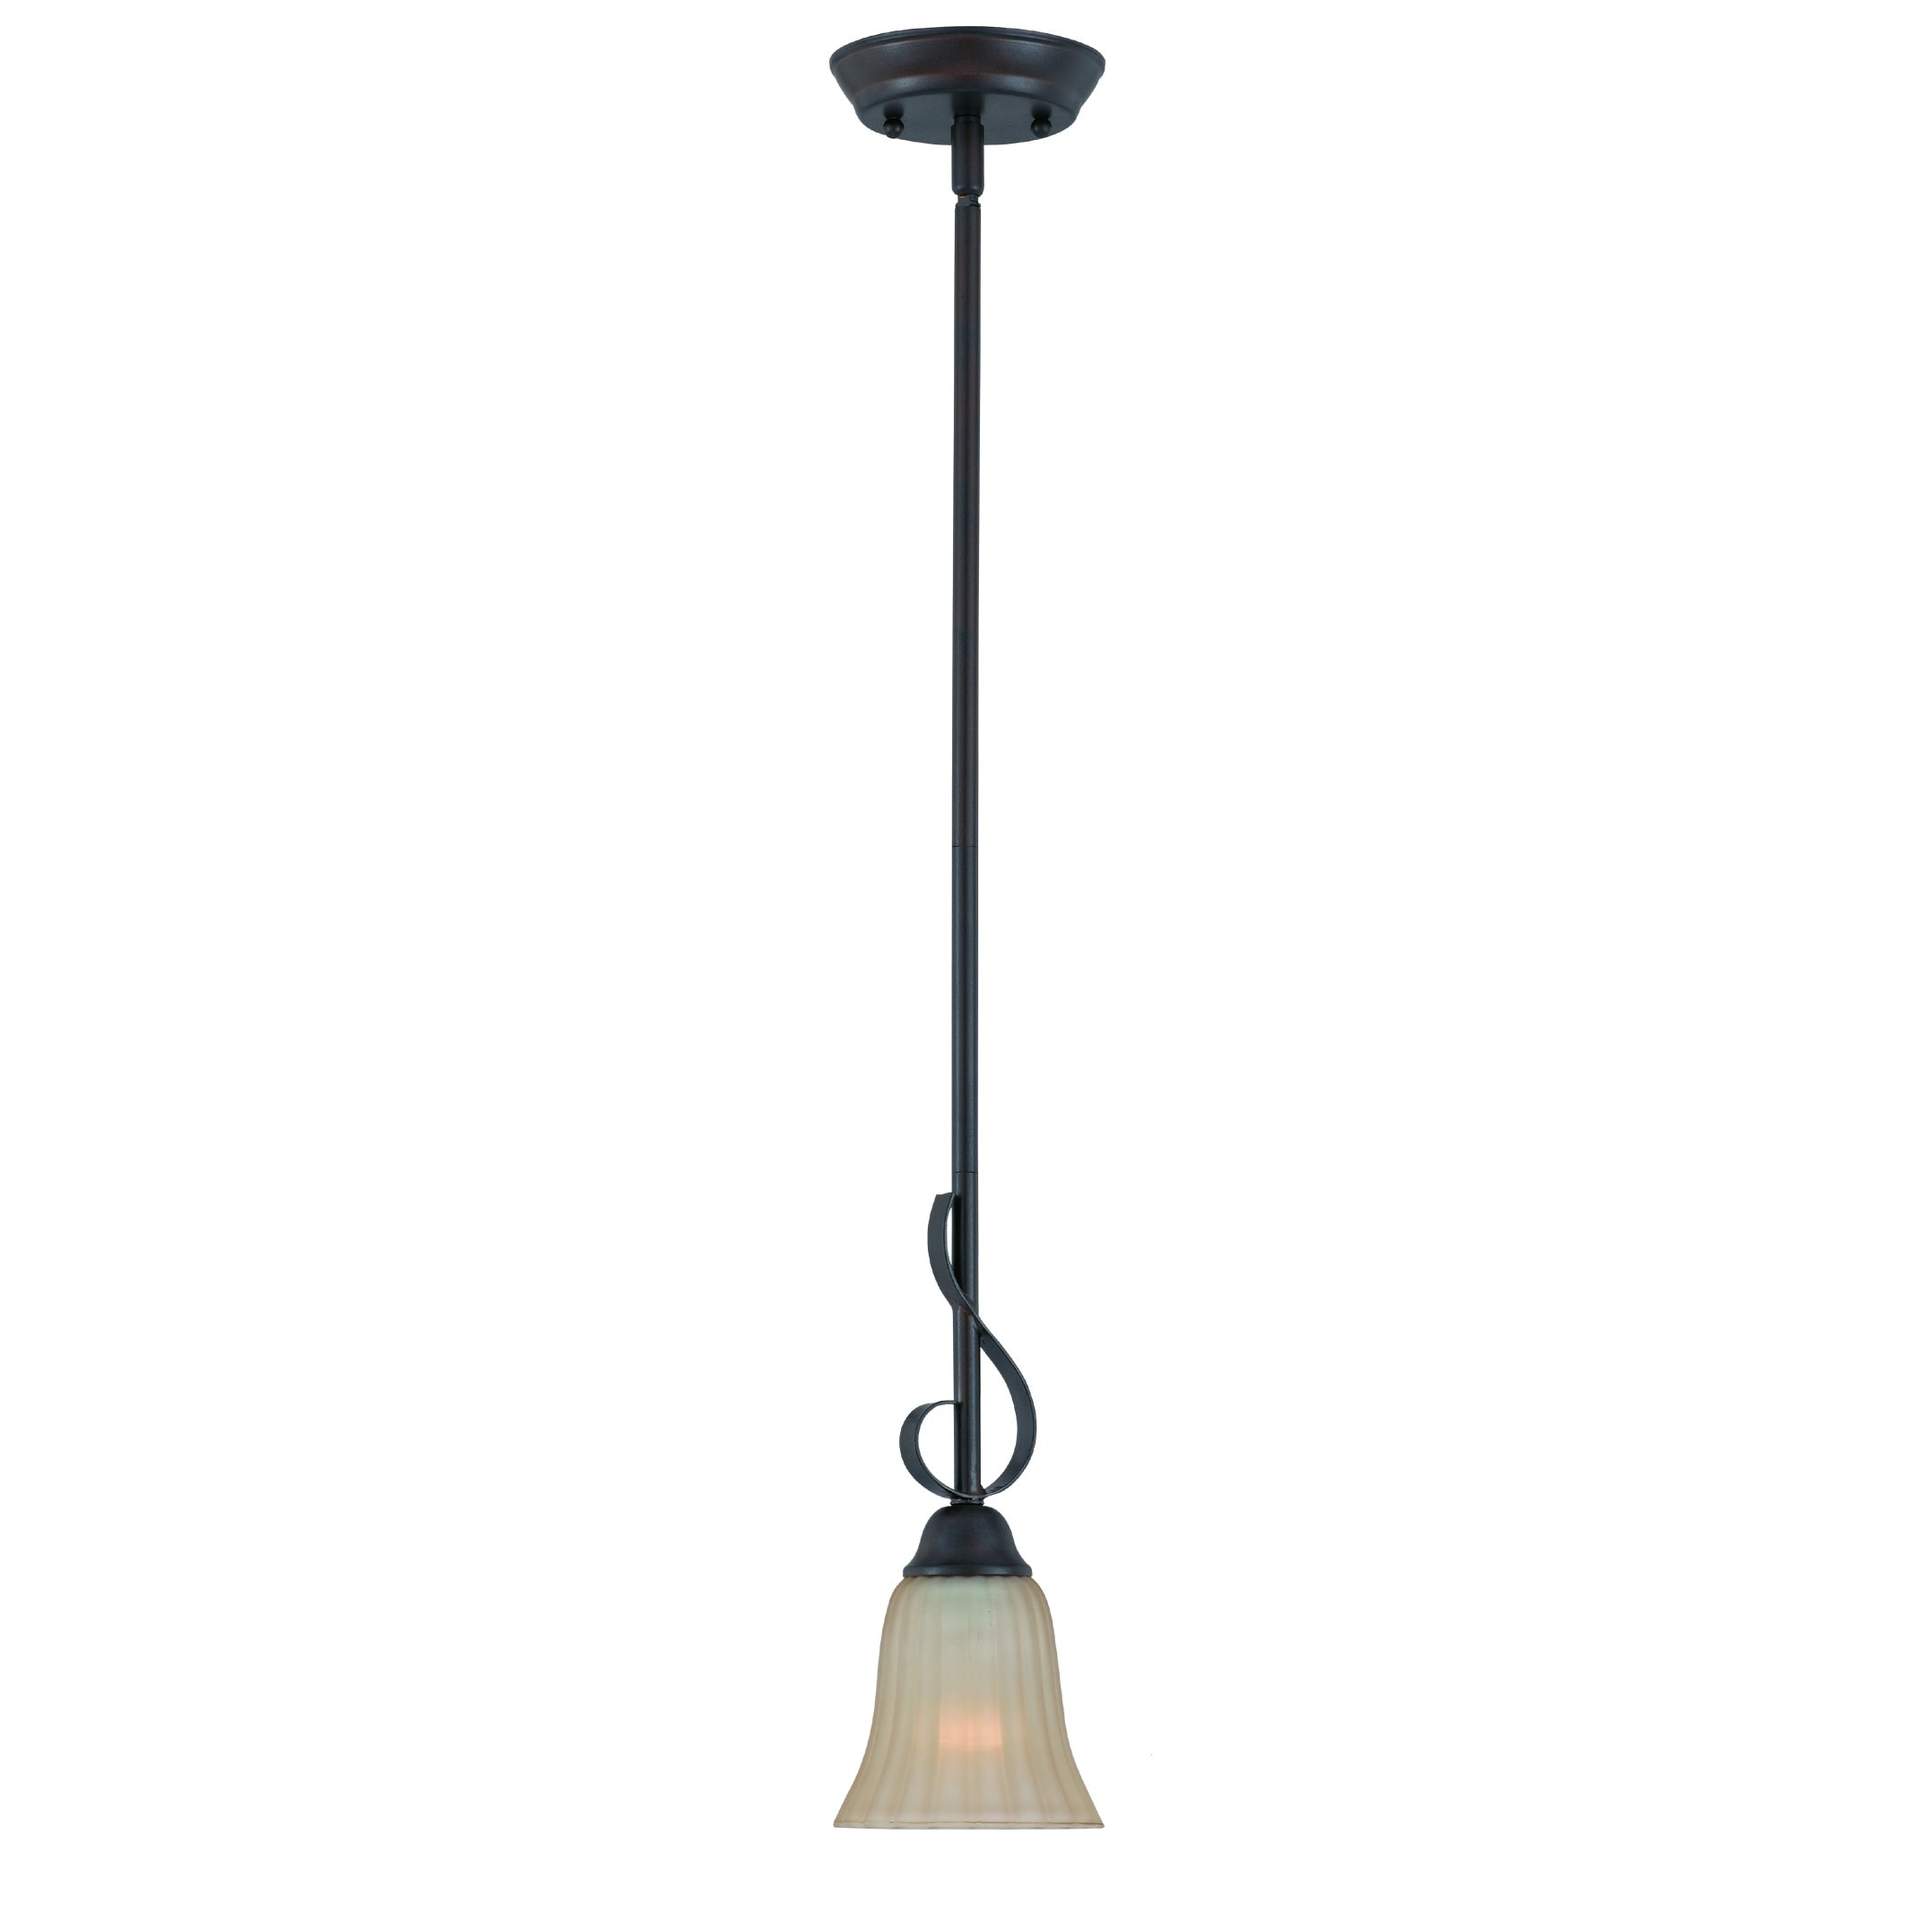 Transitional 1 light Mini-Pendant in Bronze finish